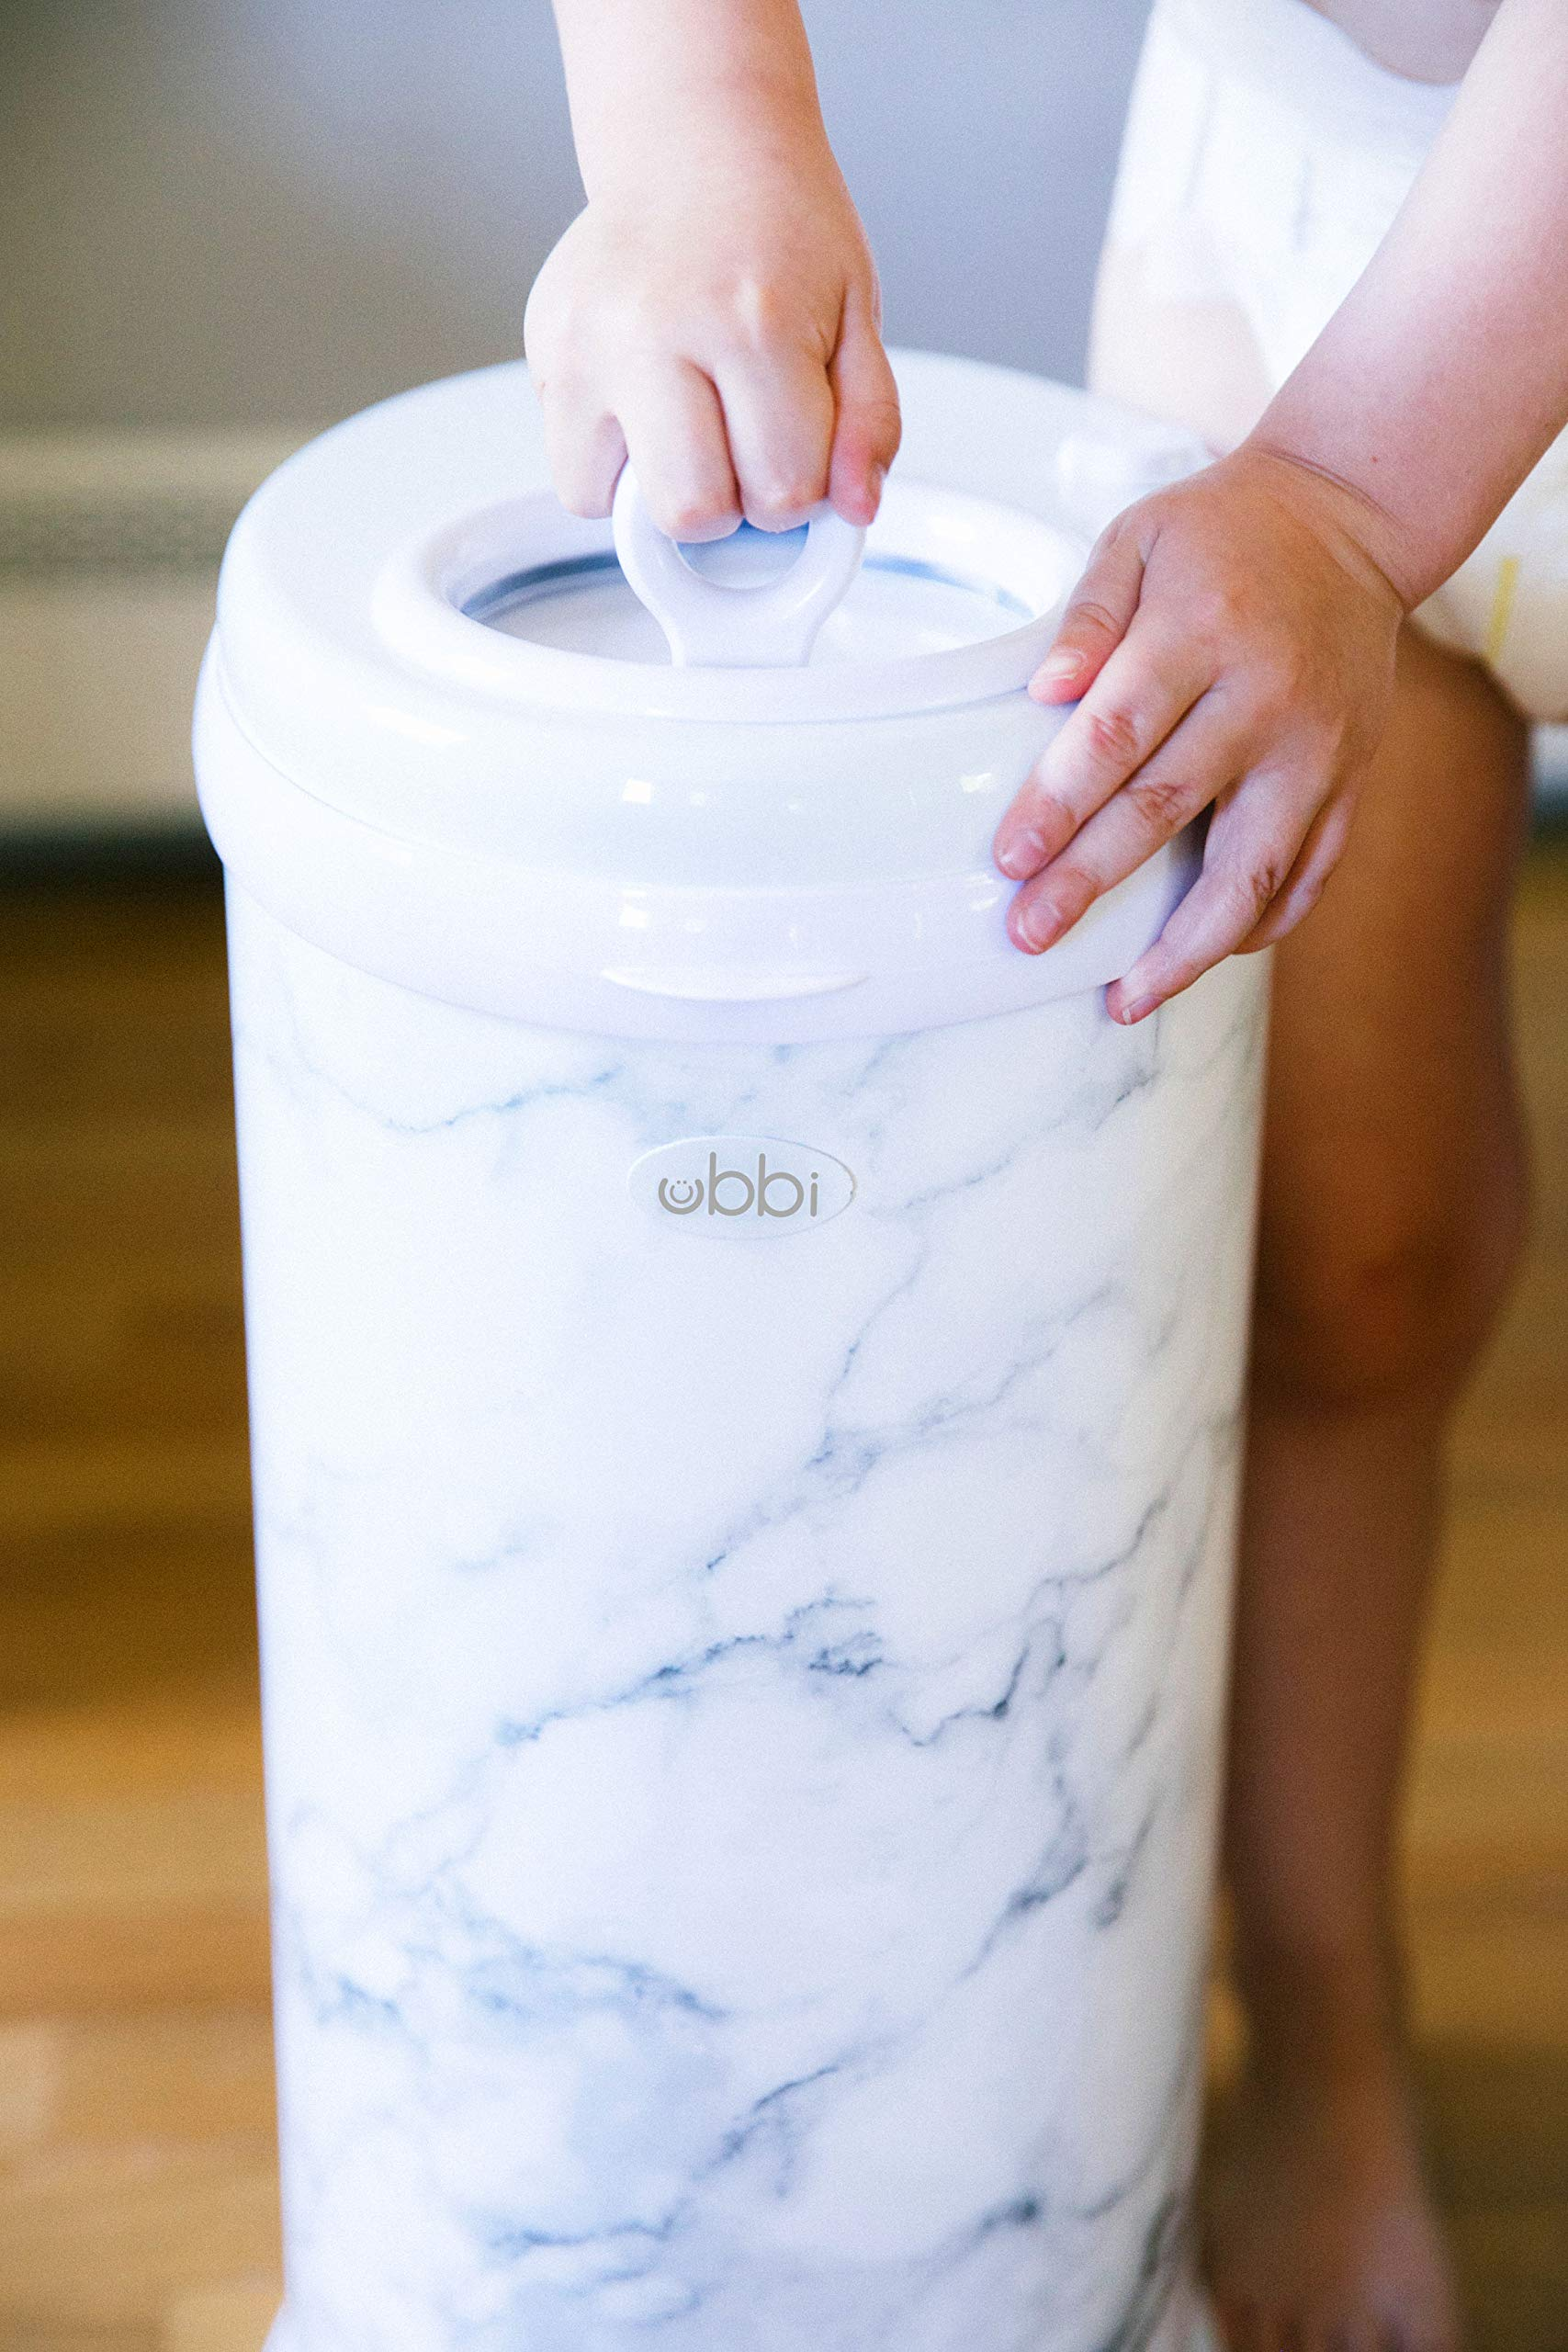 Ubbi Steel Odor Locking, No Special Bag Required Money Saving, Awards-Winning, Modern Design Registry Must-Have Diaper Pail, Marble by Ubbi (Image #3)